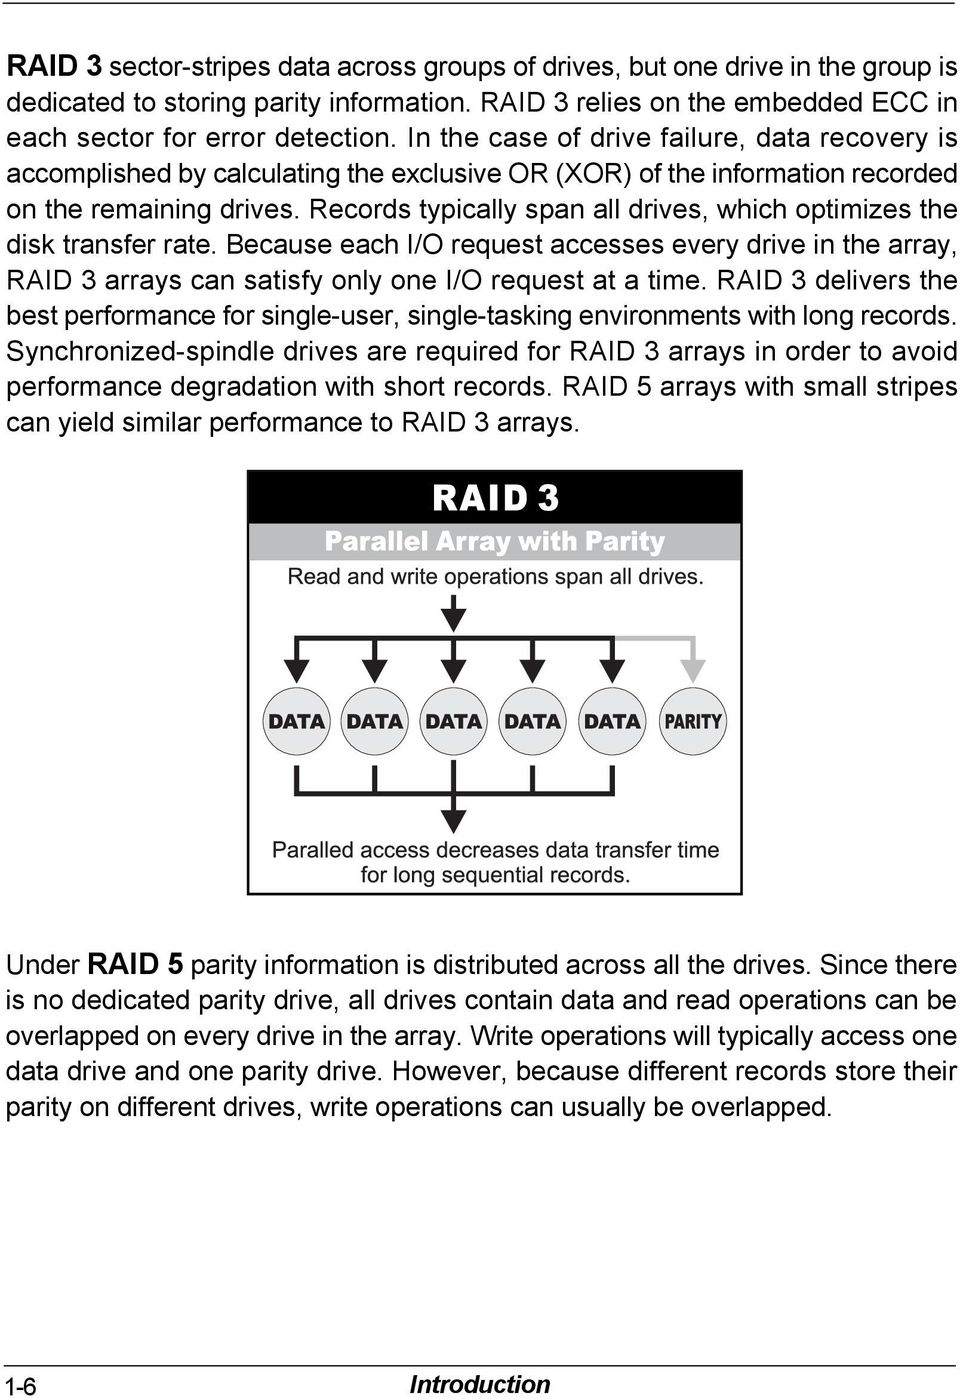 Records typically span all drives, which optimizes the disk transfer rate. Because each I/O request accesses every drive in the array, RAID 3 arrays can satisfy only one I/O request at a time.